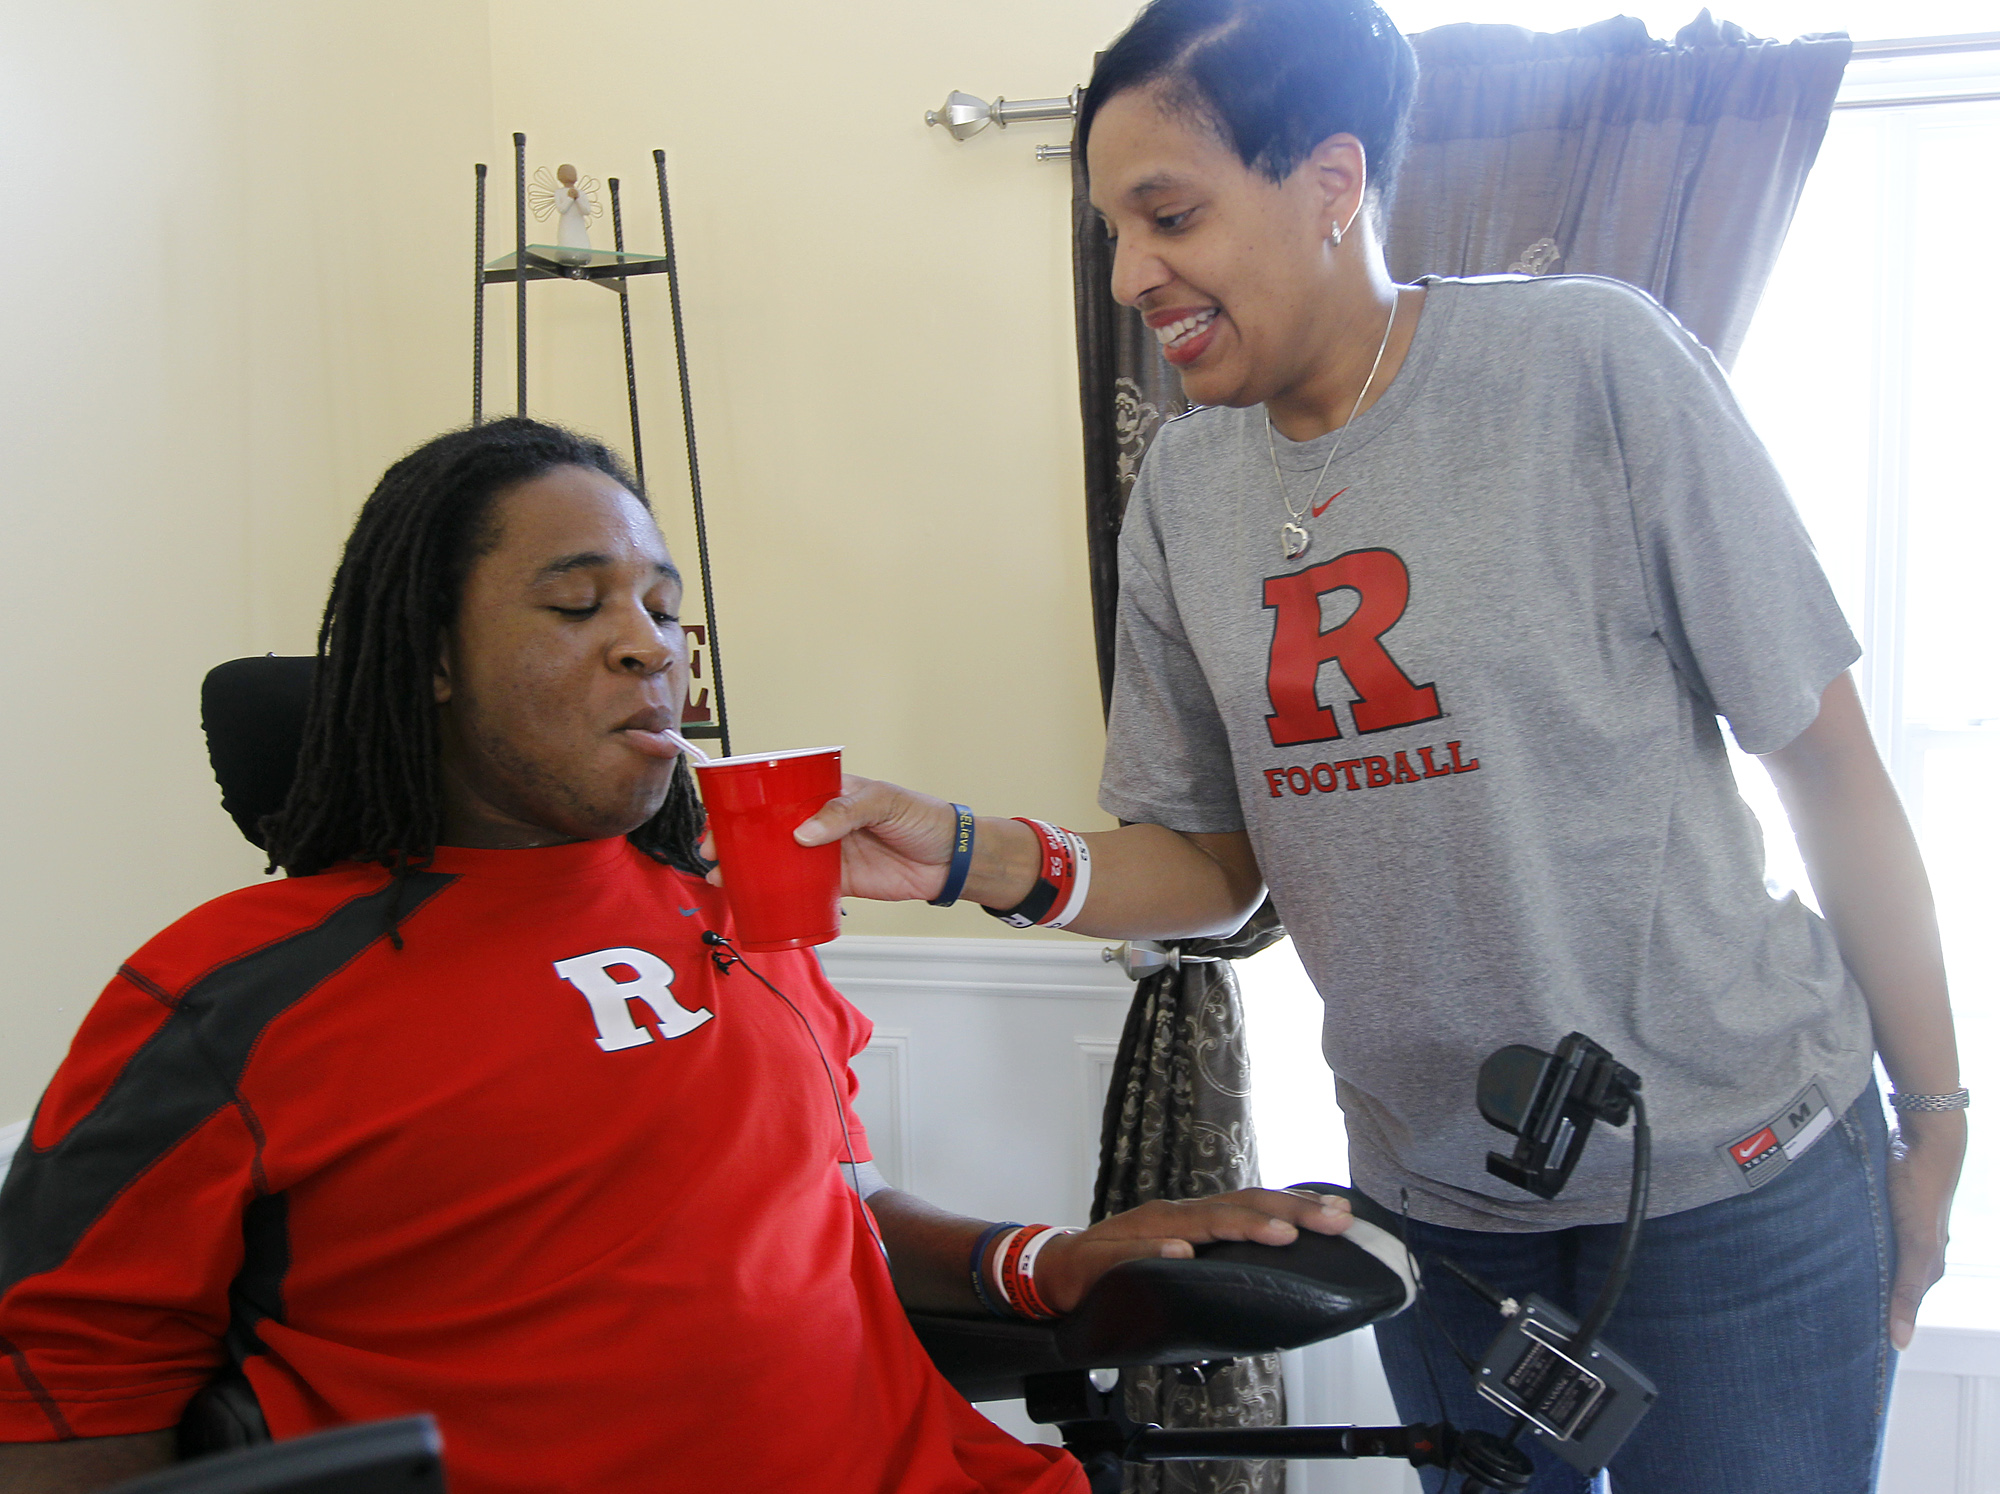 Eric LeGrand, left, gets a drink from his aunt Cheryl Curet, Monday, April 25, 2011 in Jackson, N.J. LeGrand, a Rutgers defensive tackle who was paralyzed from the neck down in a game against Army in 2010, was recently released from the Kessler Institute for Rehabilitation in West Orange, N.J. (AP Photo/Julio Cortez)